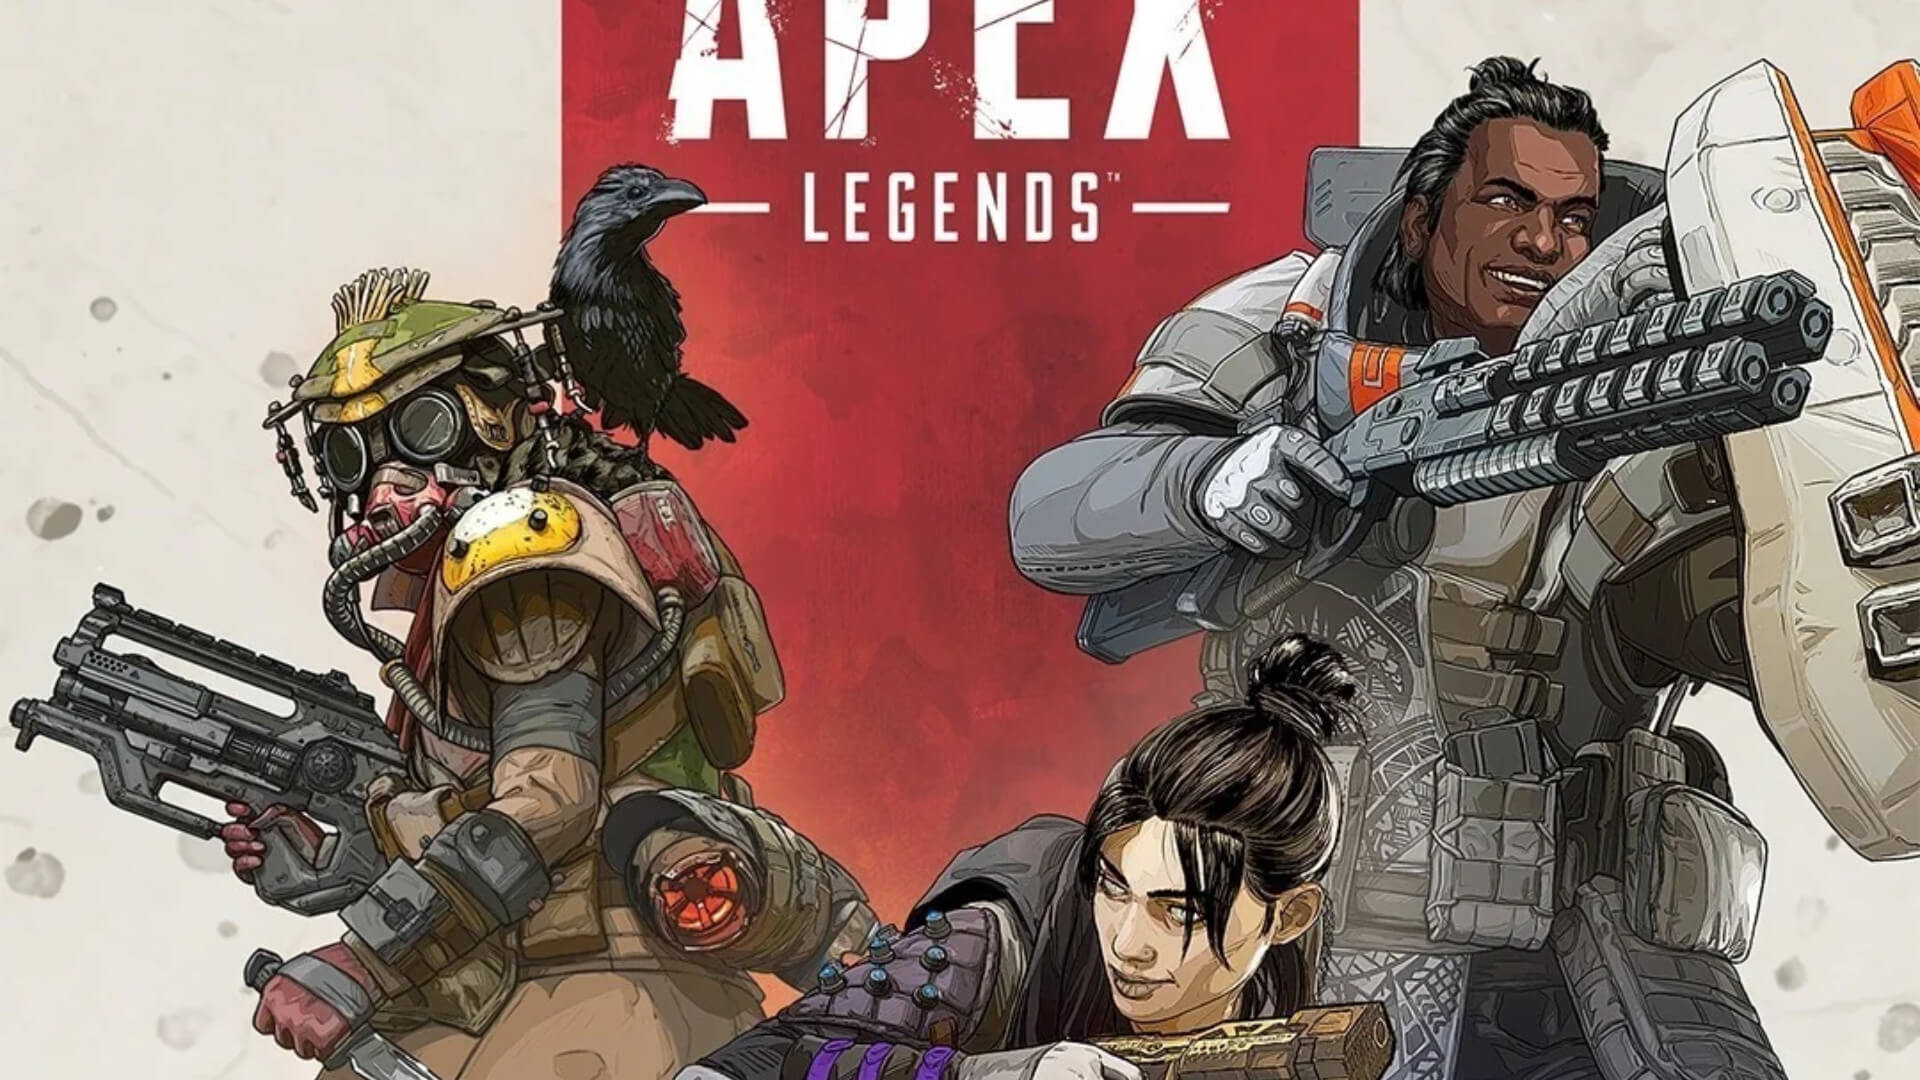 New Dates for Apex Legends Tournaments Revealed